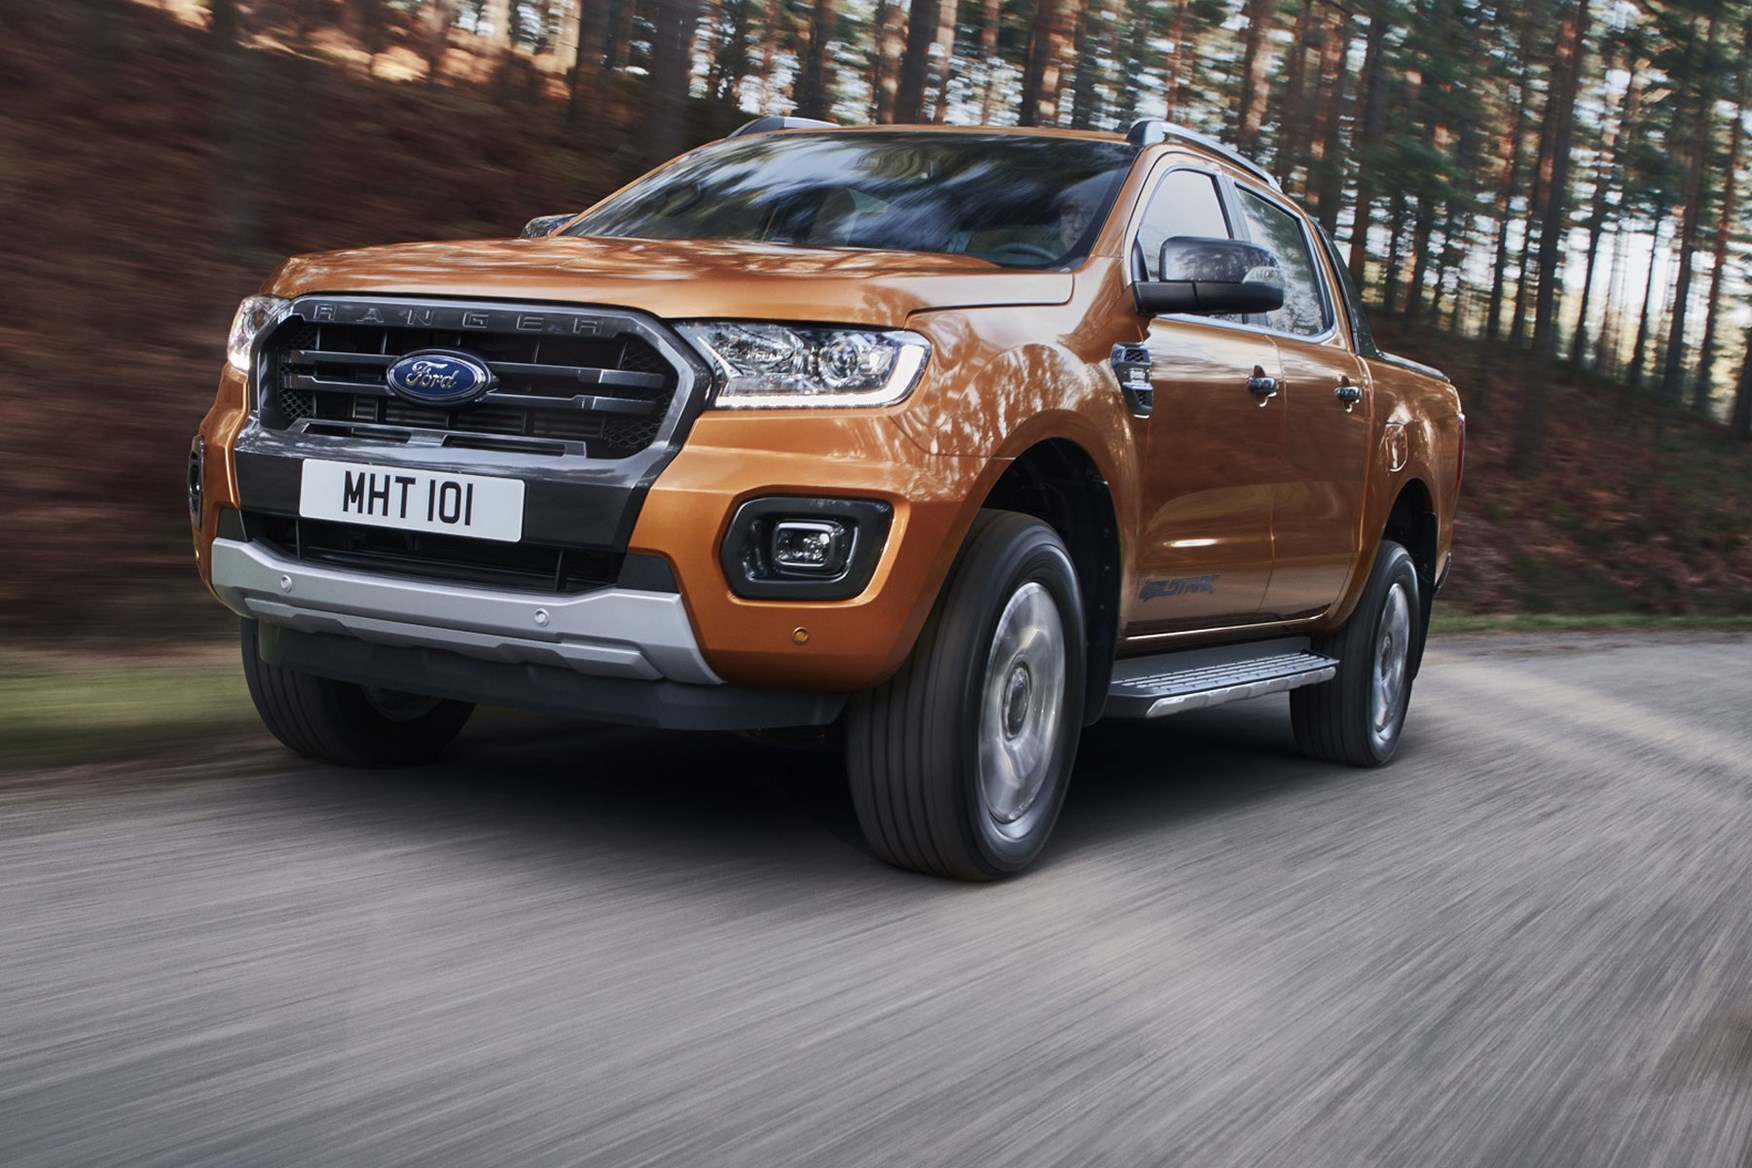 d45702aa63d4 New pickups coming soon detailed on Parkers Vans 2019 Ford Ranger facelift  features new engines and technology ...